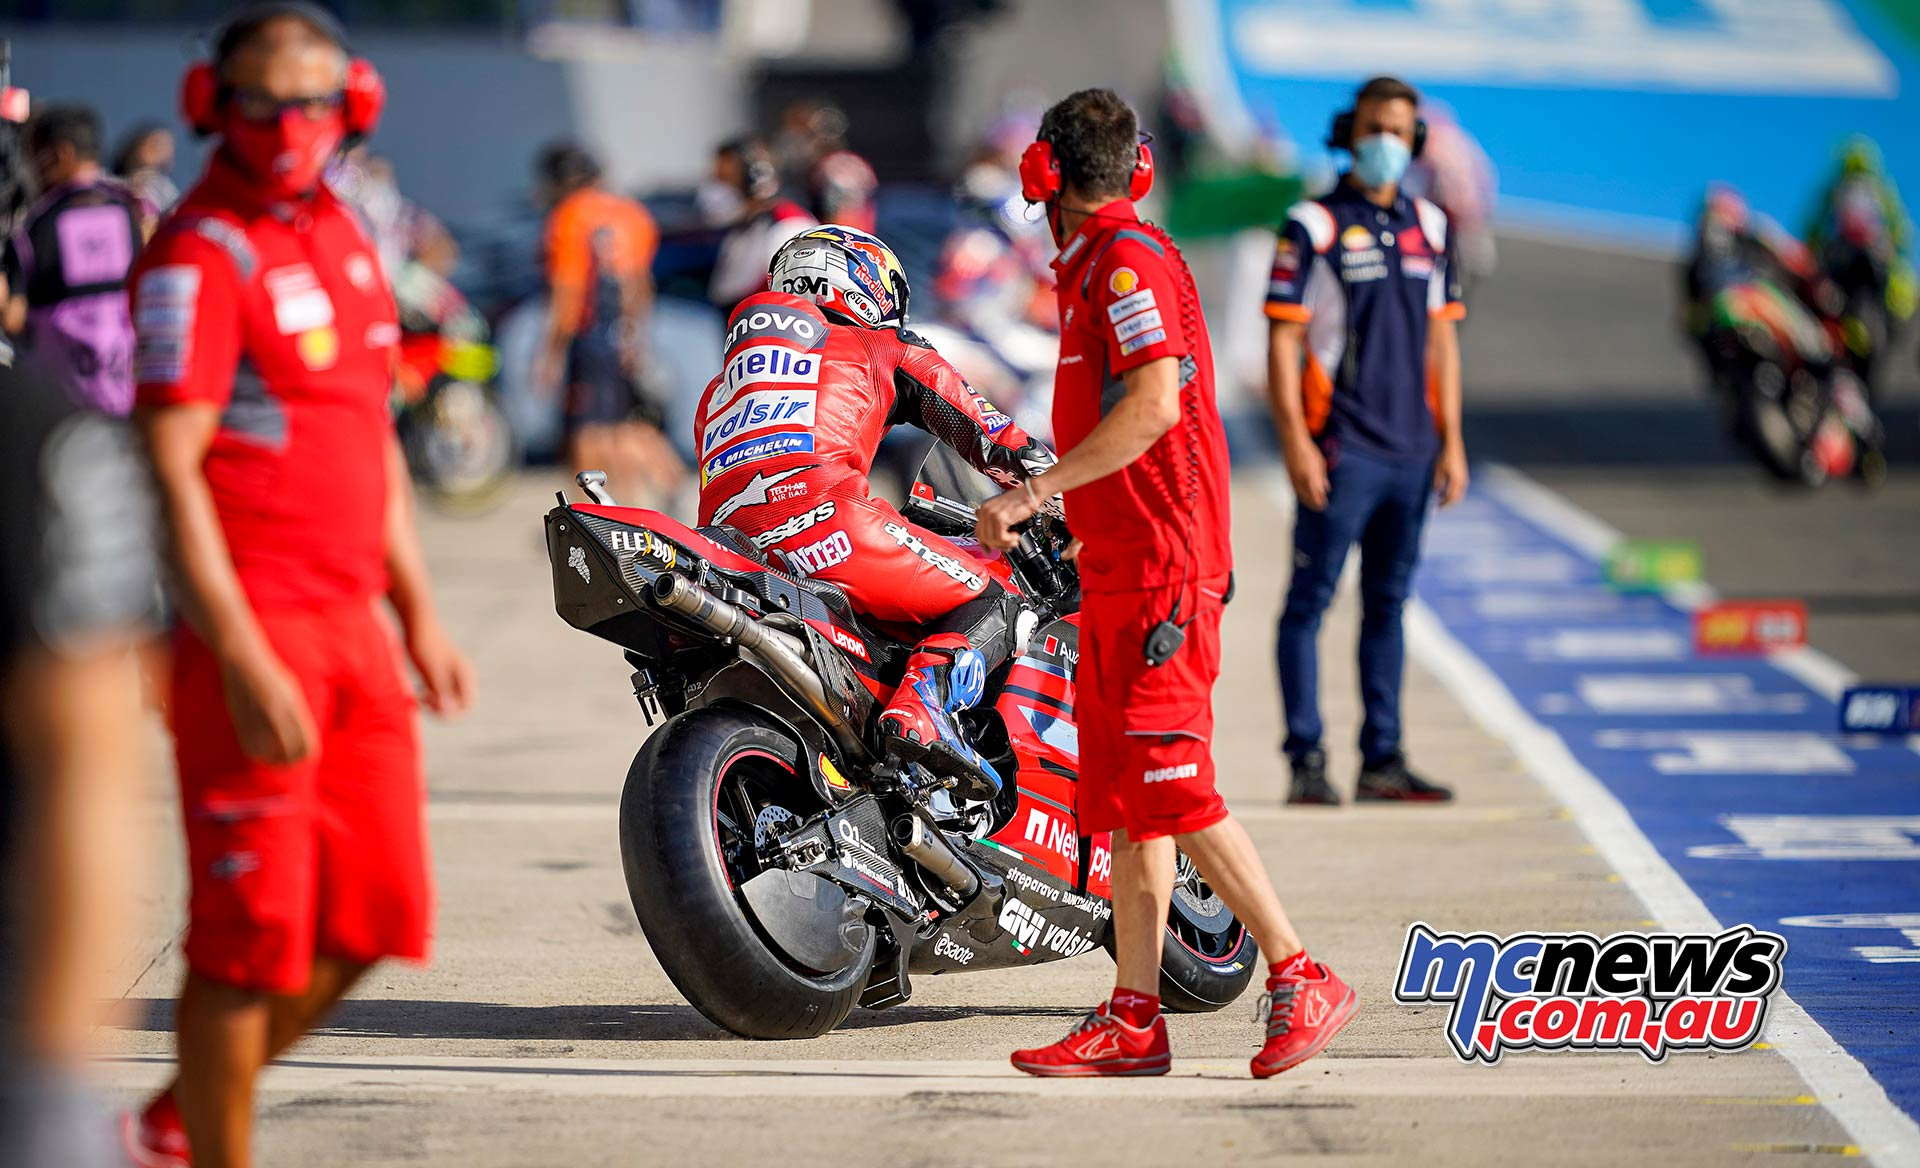 MotoGP: Dovizioso Beats Marquez By 0.023s To Win 2019 ... |Motogp